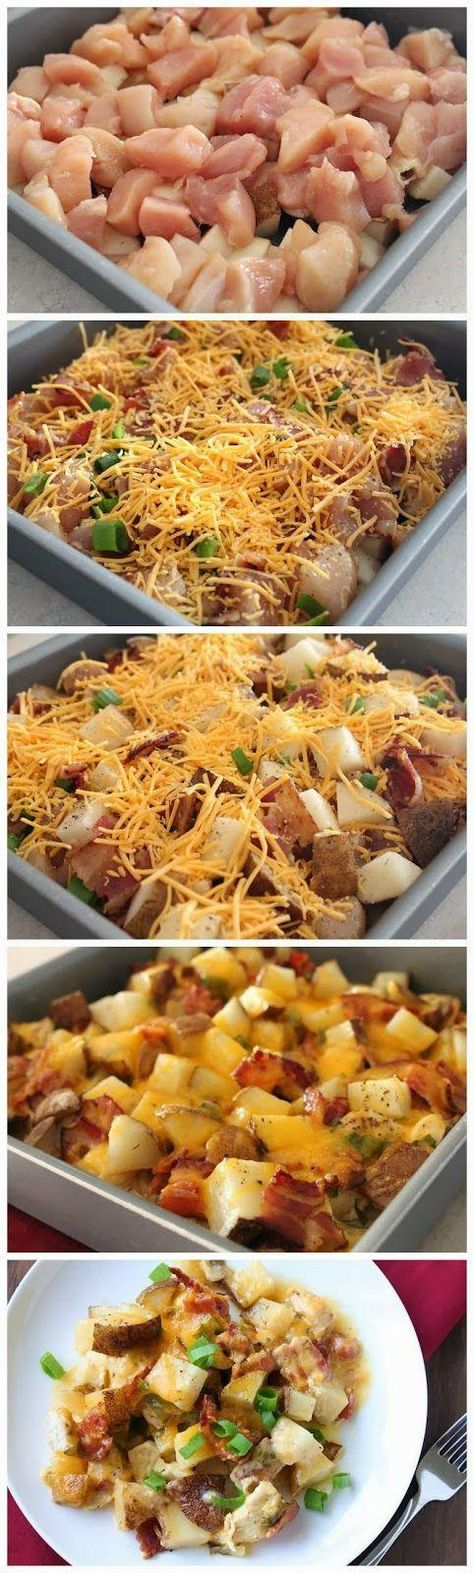 """Loaded Baked Potato & Chicken Casserole - 3 - 4 medium potatoes diced, (1.5 lbs. or 4 1/2 cups)chicken, diced 4 slices cooked bacon, 1/2 cups shredded cheddar cheese 4 green onions, sliced, salt, & pepper, 1/2 cup heavy cream, 2 TBL unsalted butter, cut into small pieces - Oven 350 degrees F, In 9"""" x 9"""" baking pan."""